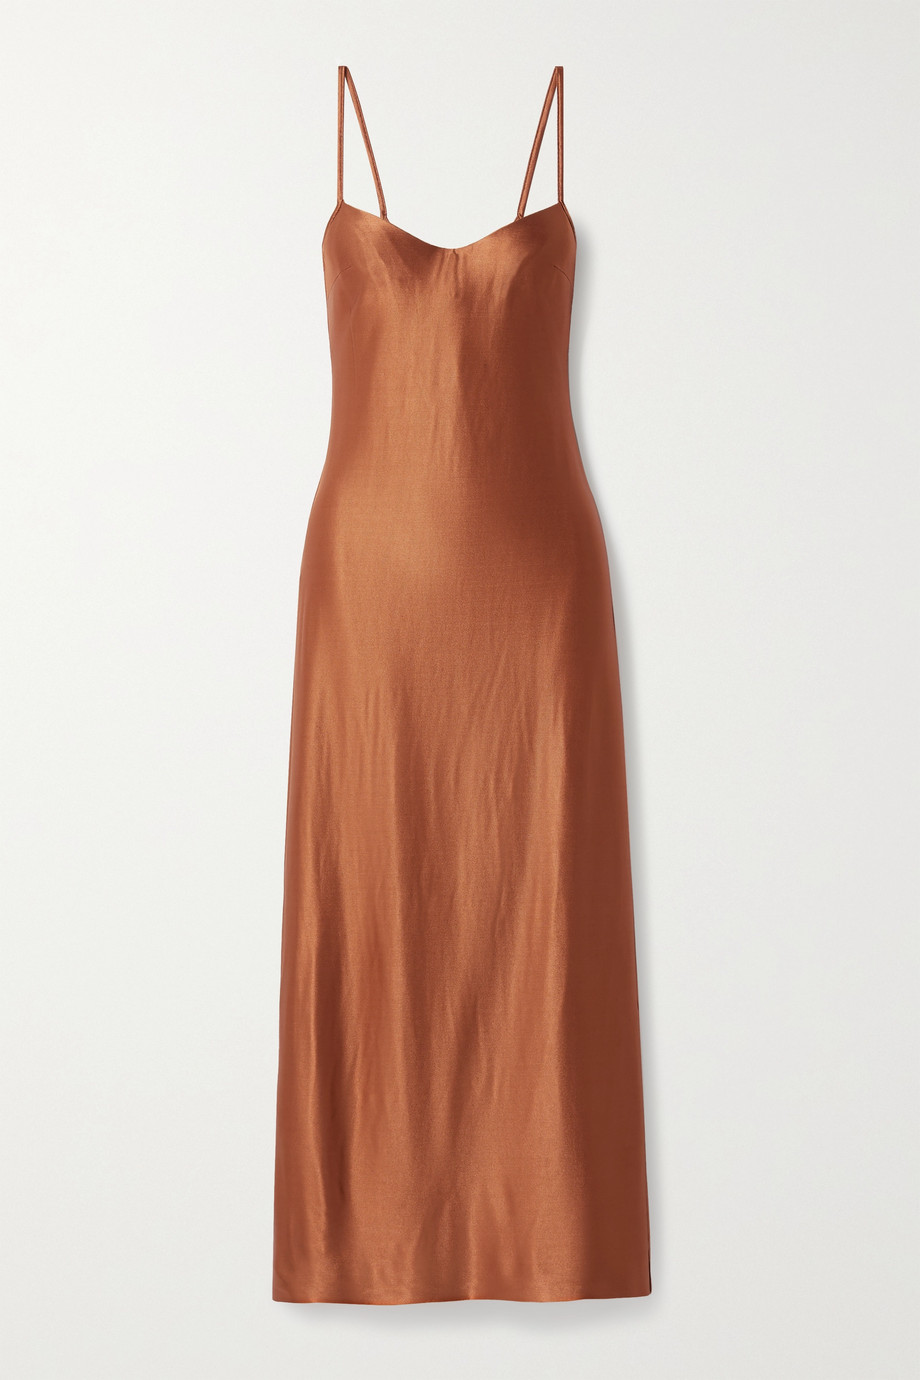 Galvan Sahara open-back satin-jersey midi dress